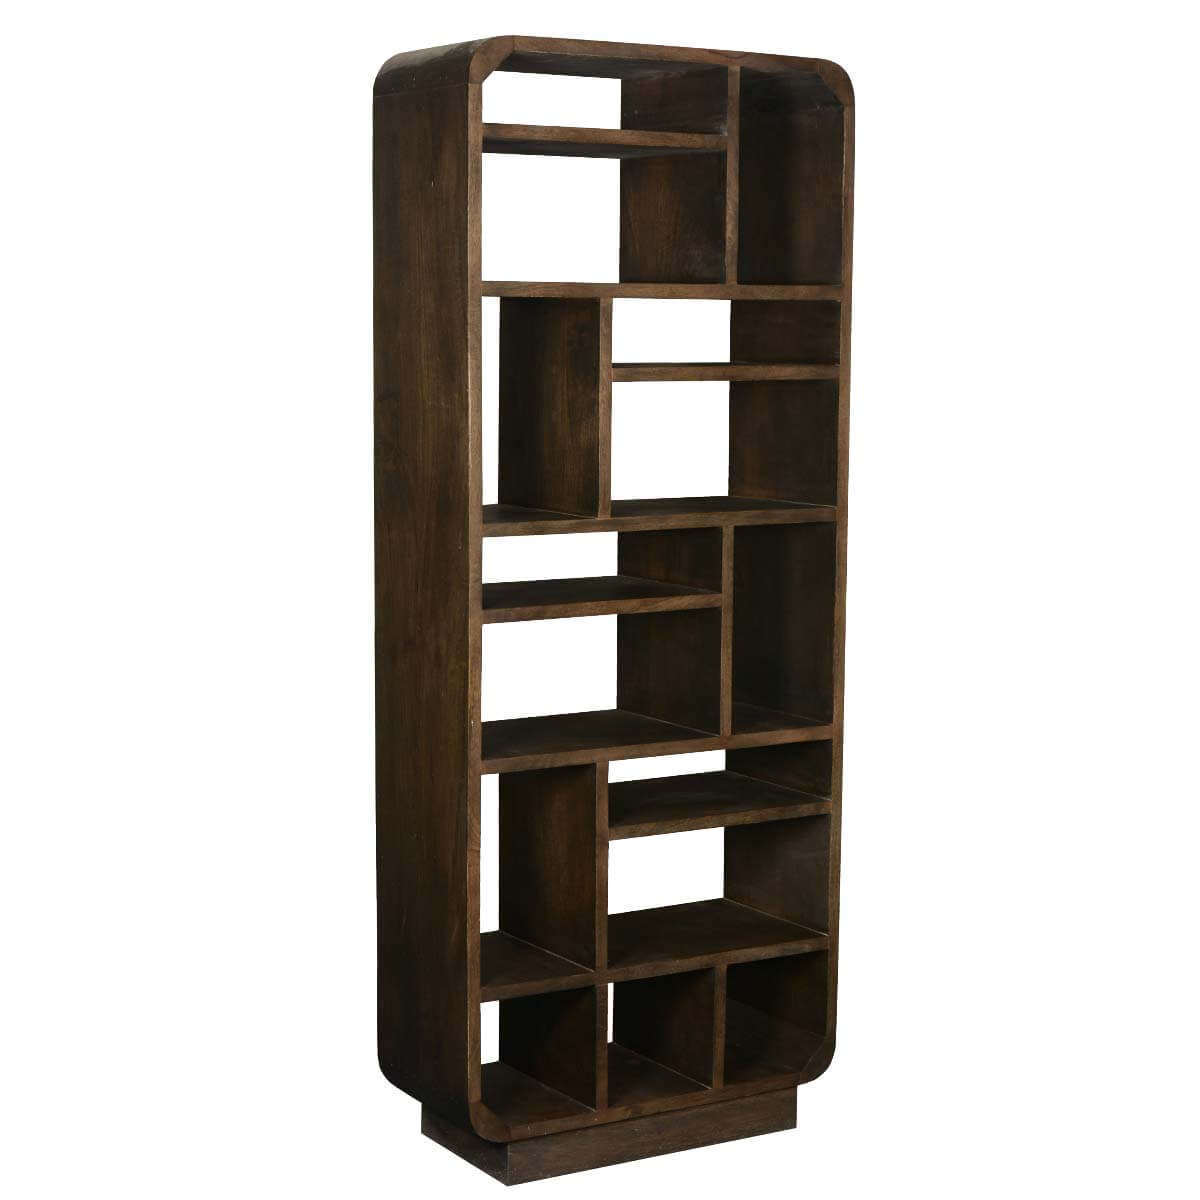 #624831  Bookcase Rounded Corners Mango Wood 15 Section Asymmetrical Cube with 1200x1200 px of Best Cube Bookcase Wood 12001200 image @ avoidforclosure.info